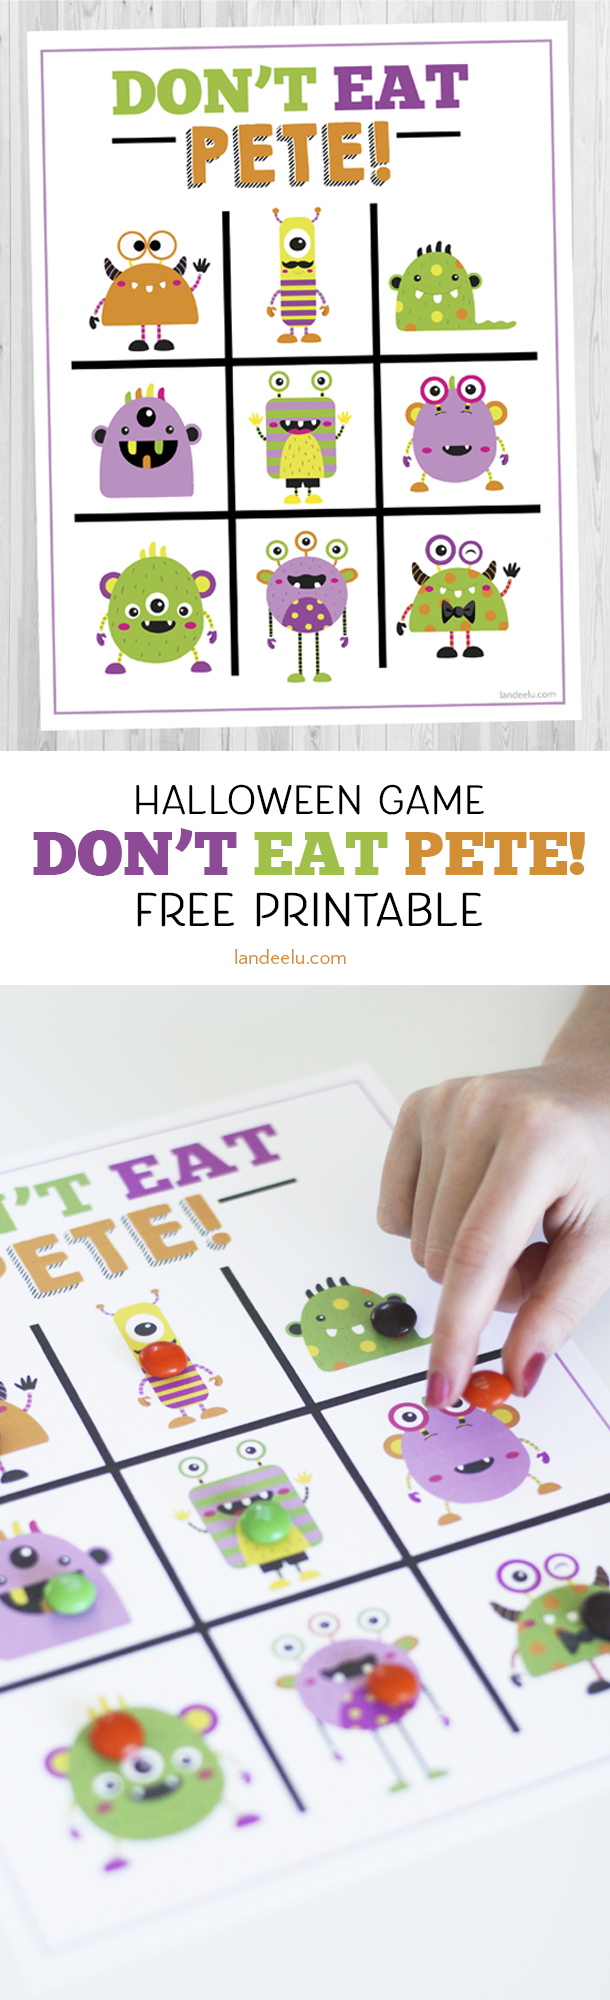 Love this monster version of Don't Eat Pete! I was looking for a Halloween game for kids to use in my son's classroom party this year. This is perfect!